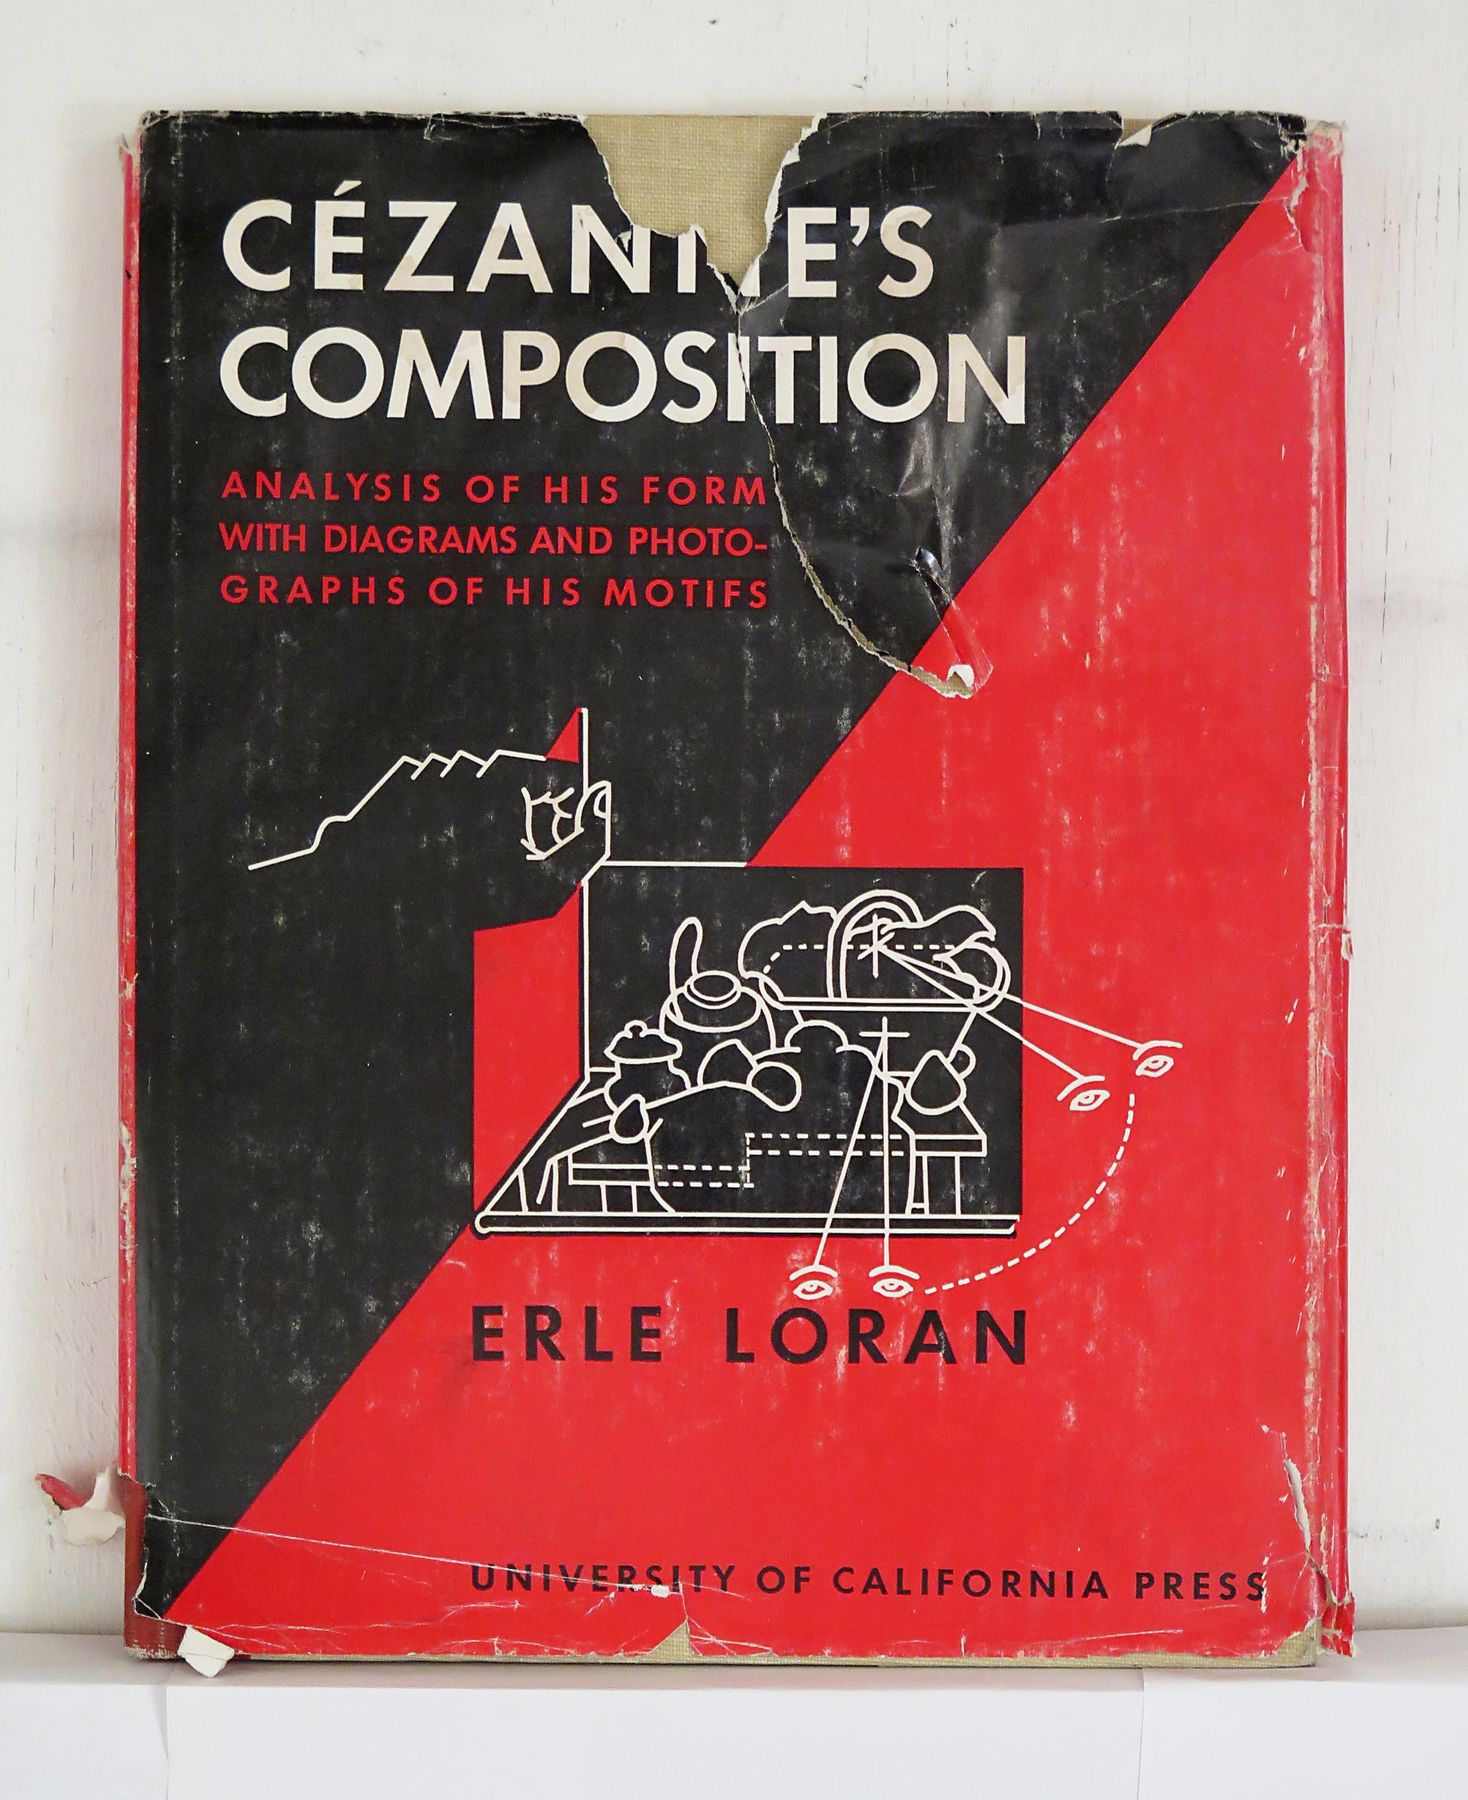 Cezannes composition analysis of his form with diagrams and cezannes composition analysis of his form with diagrams and photographs of his motifs erle compositionbook jacketbook ccuart Image collections